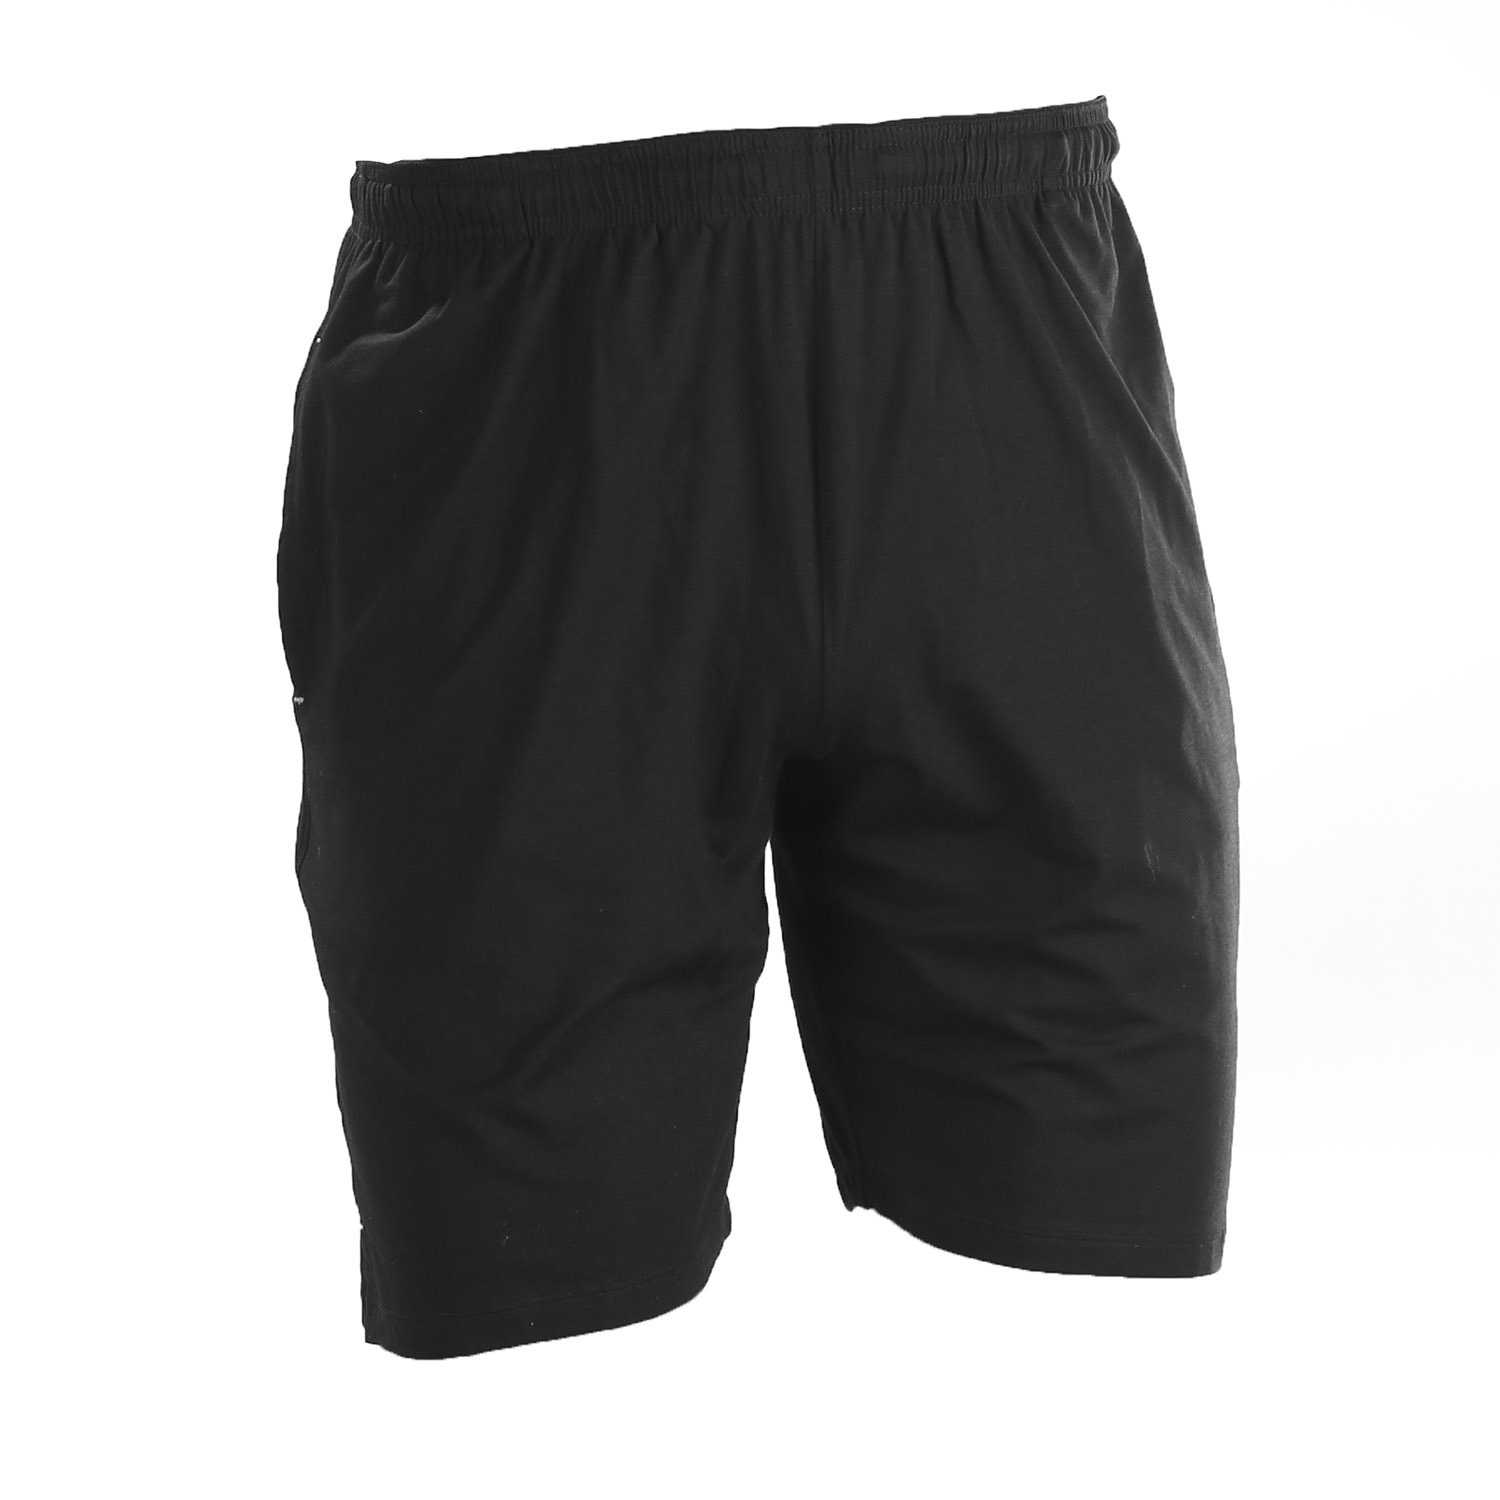 Tasc Men's Vital Training Shorts